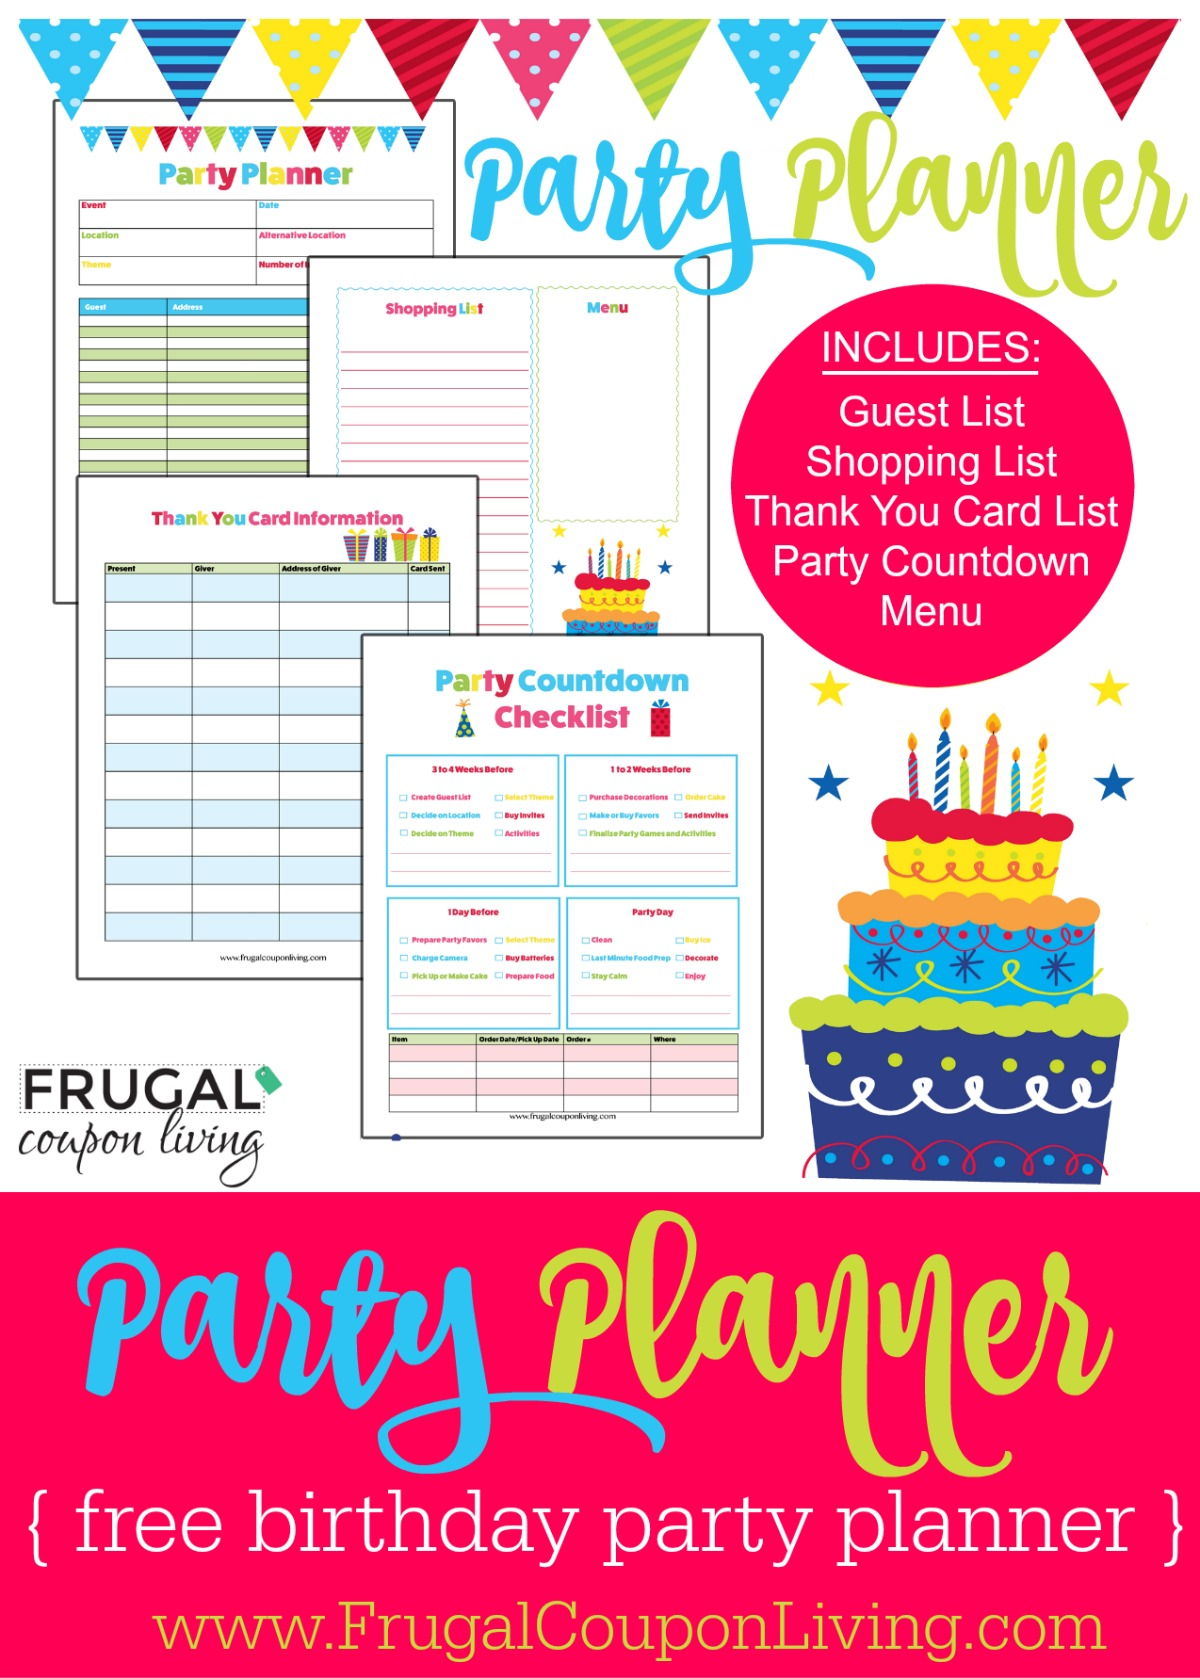 Free birthday party planner for Event planning ideas parties